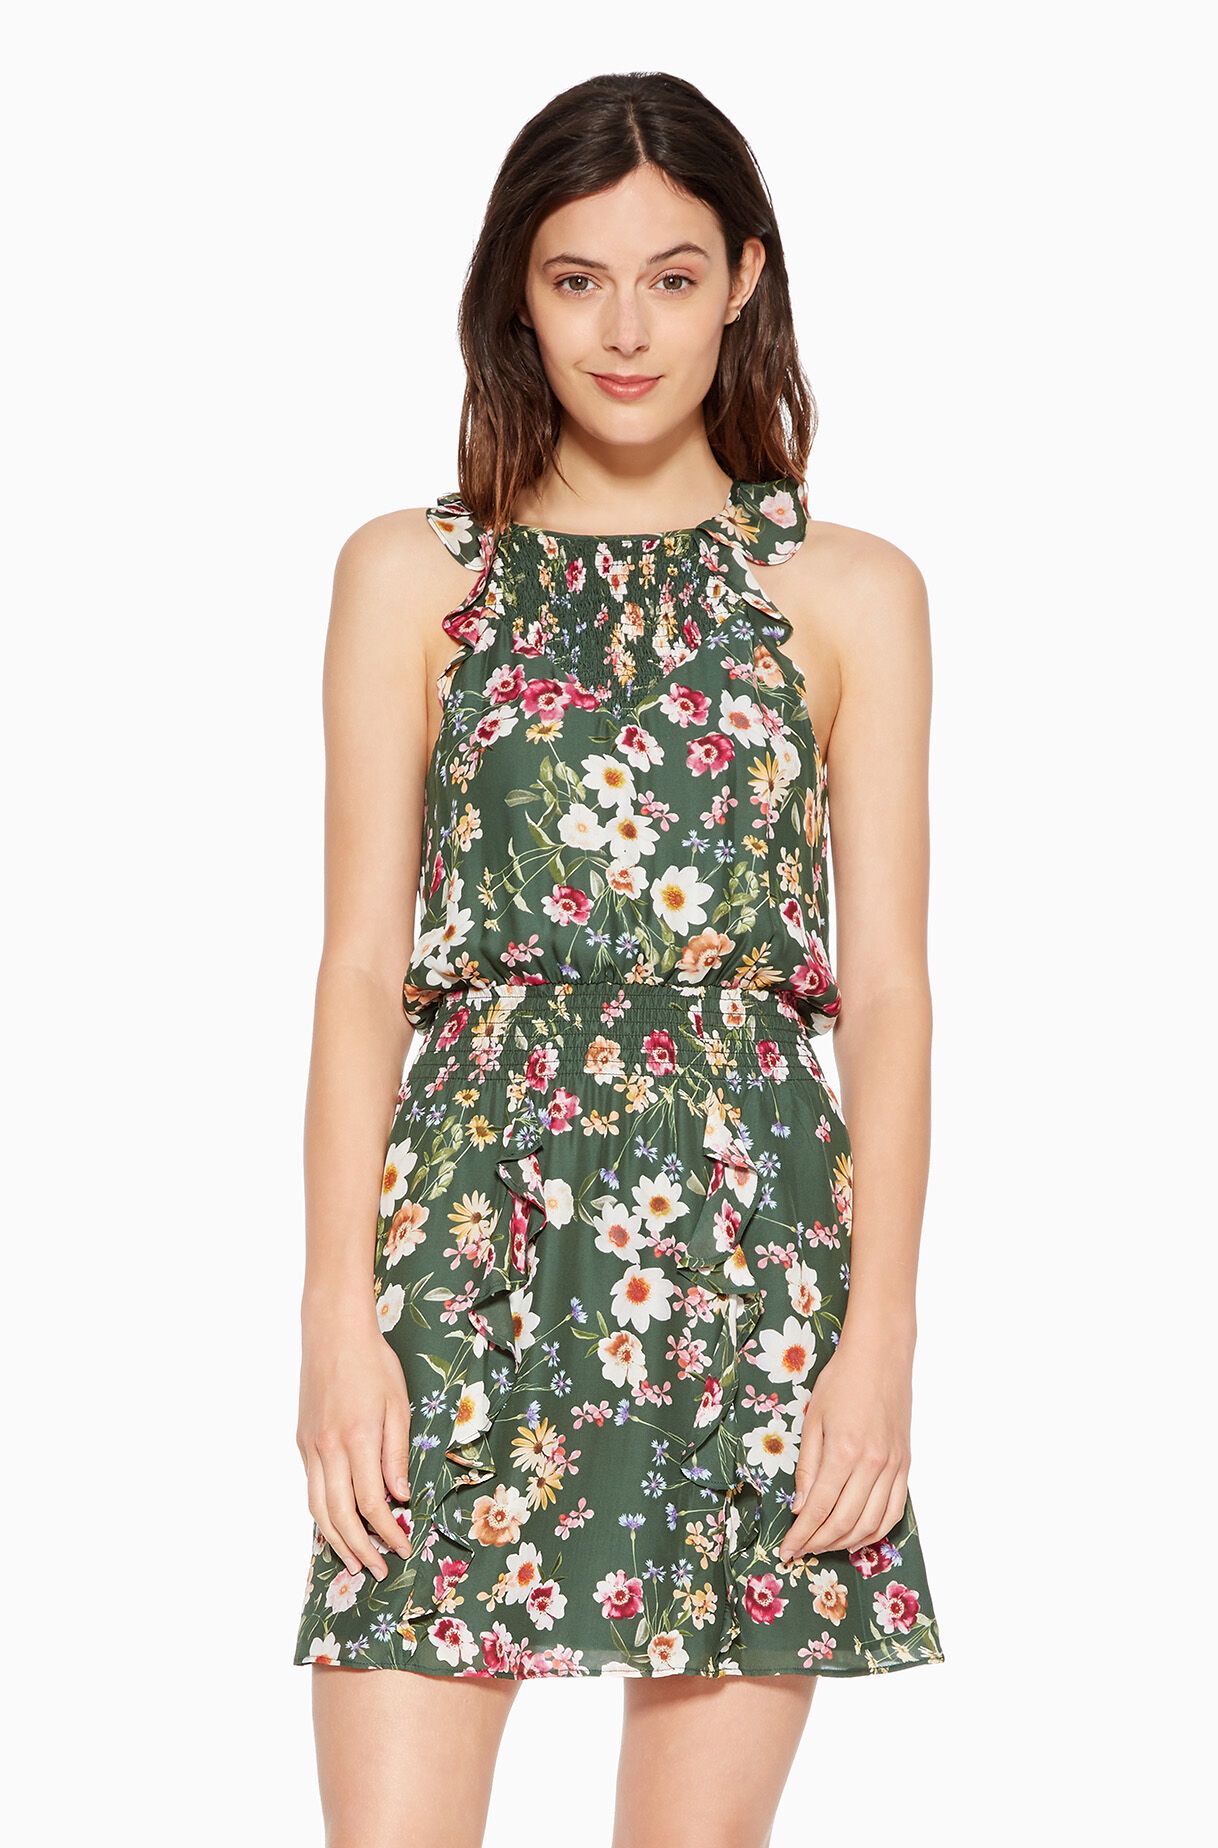 Milly Floral Dress | Parker NY